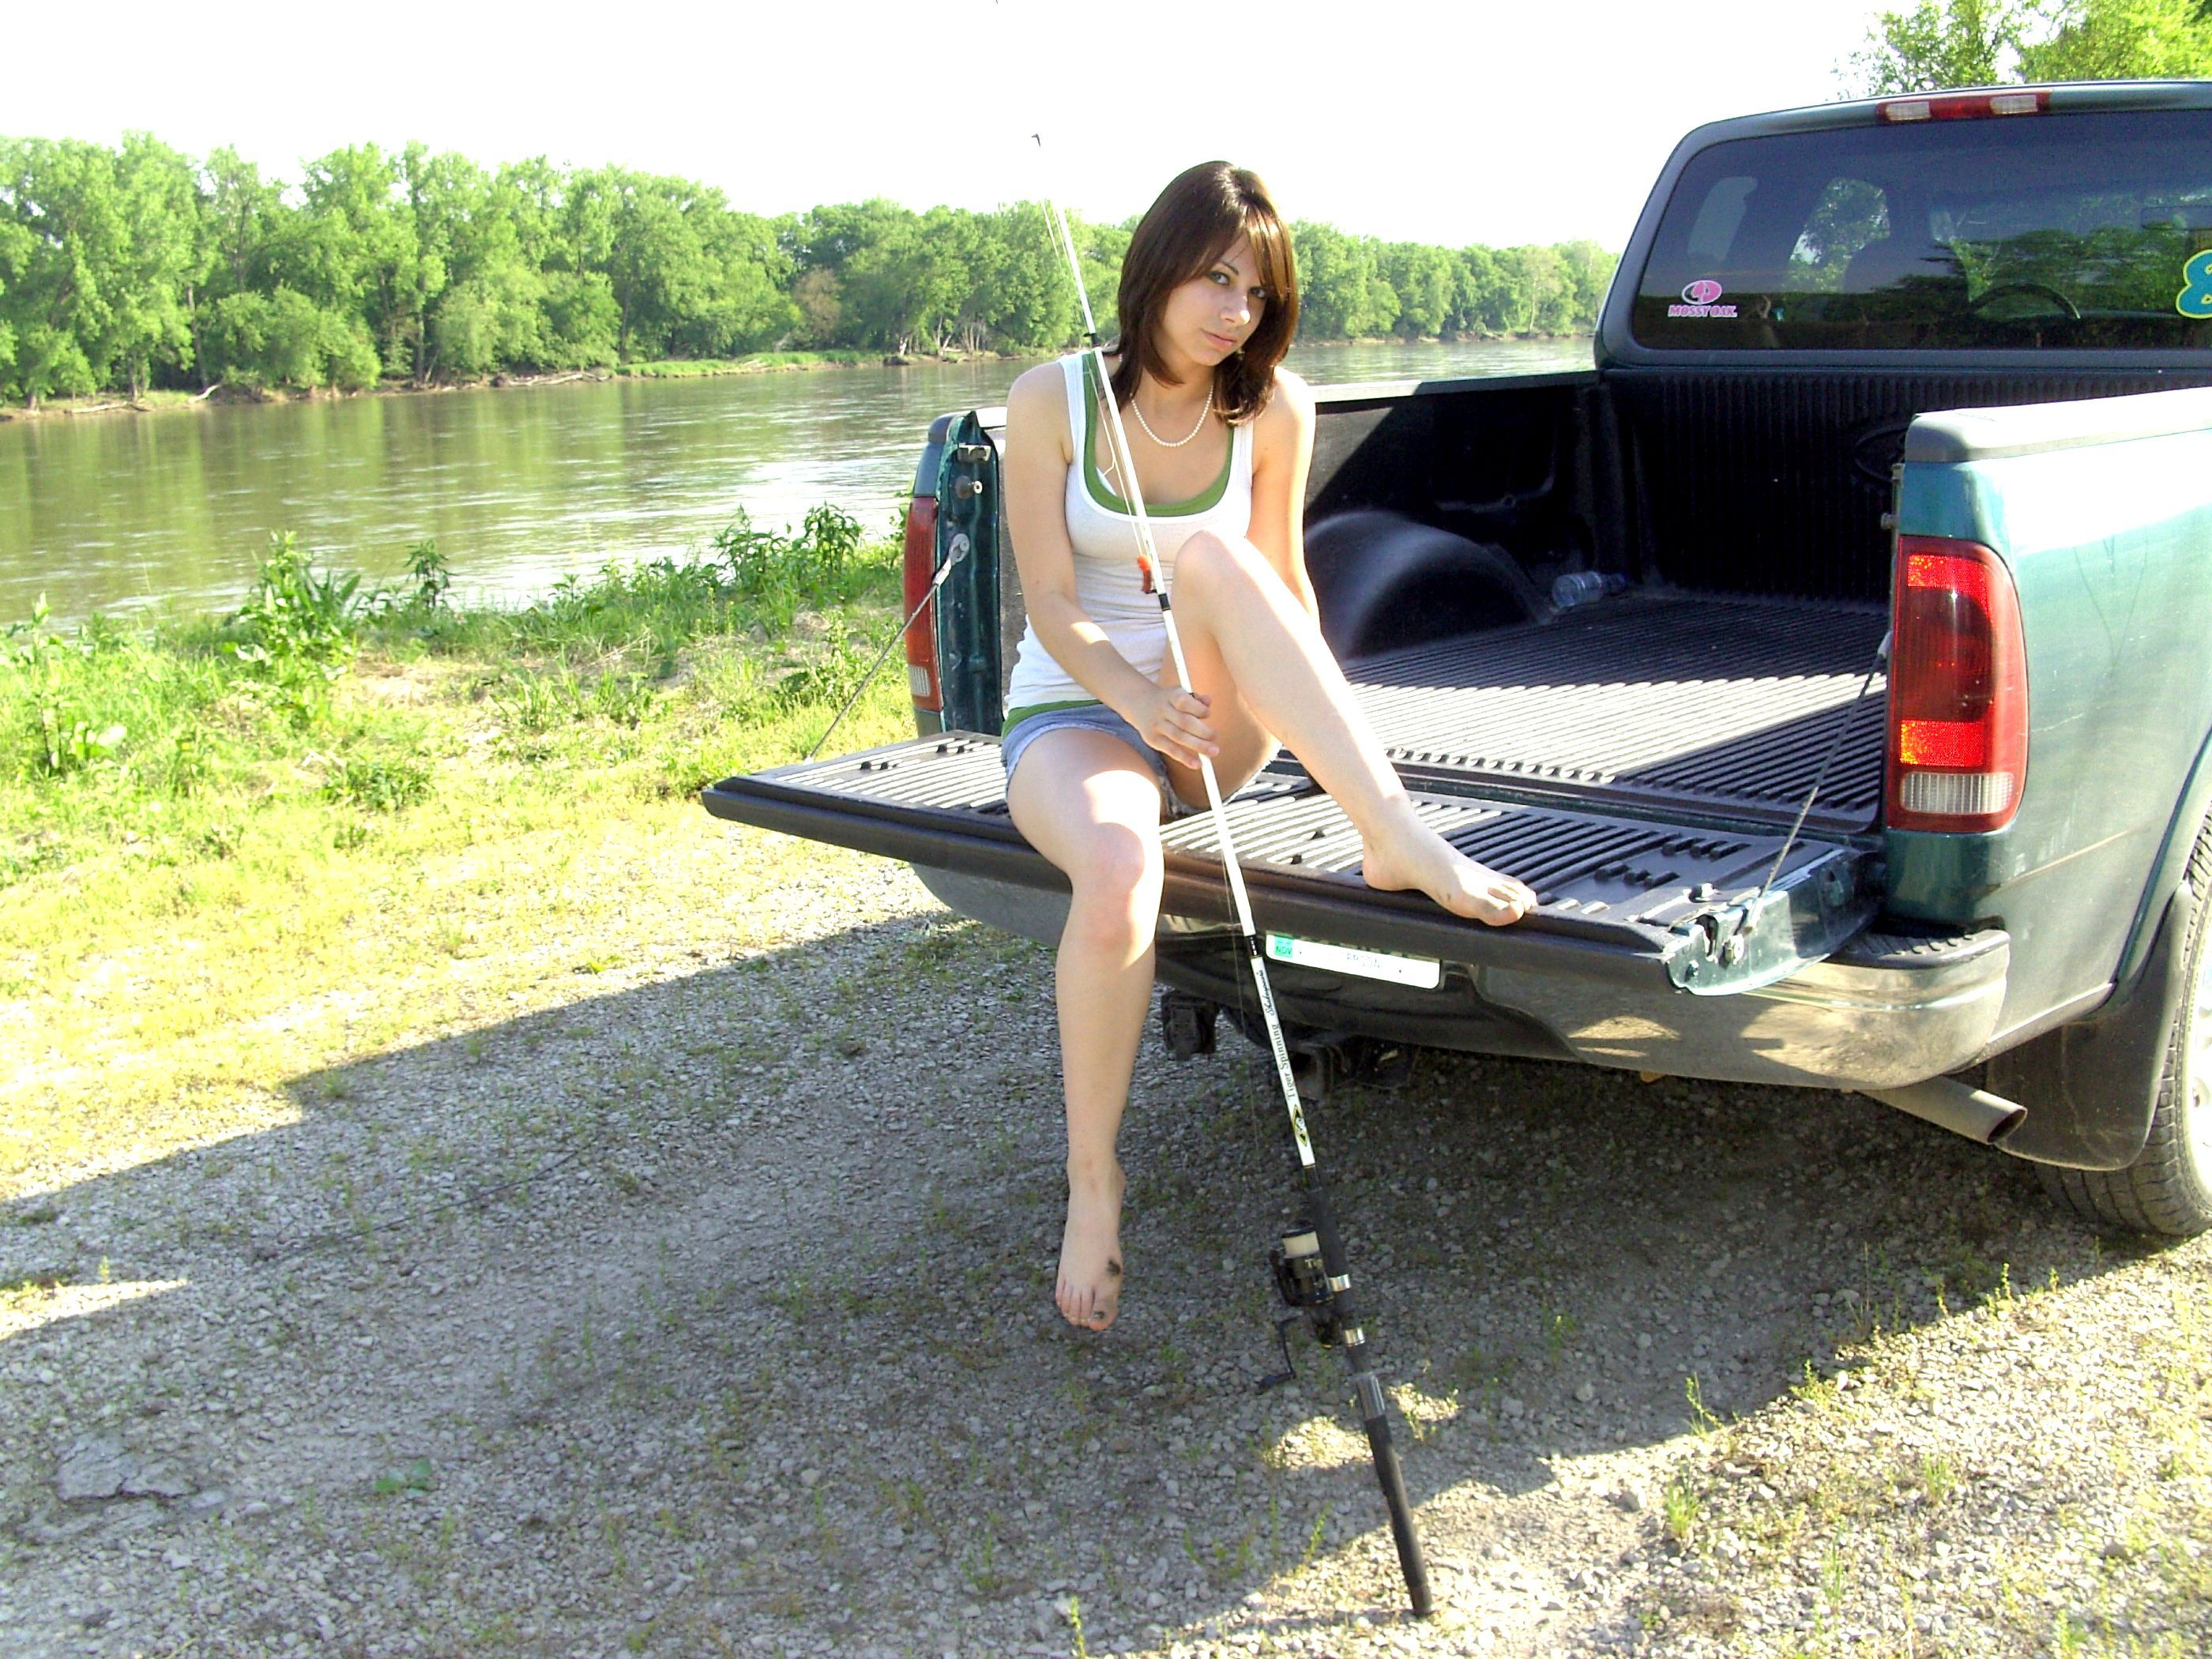 Girl_inA_Truck21 1998 Ford F150 Regular Cab Specs, Photos ...